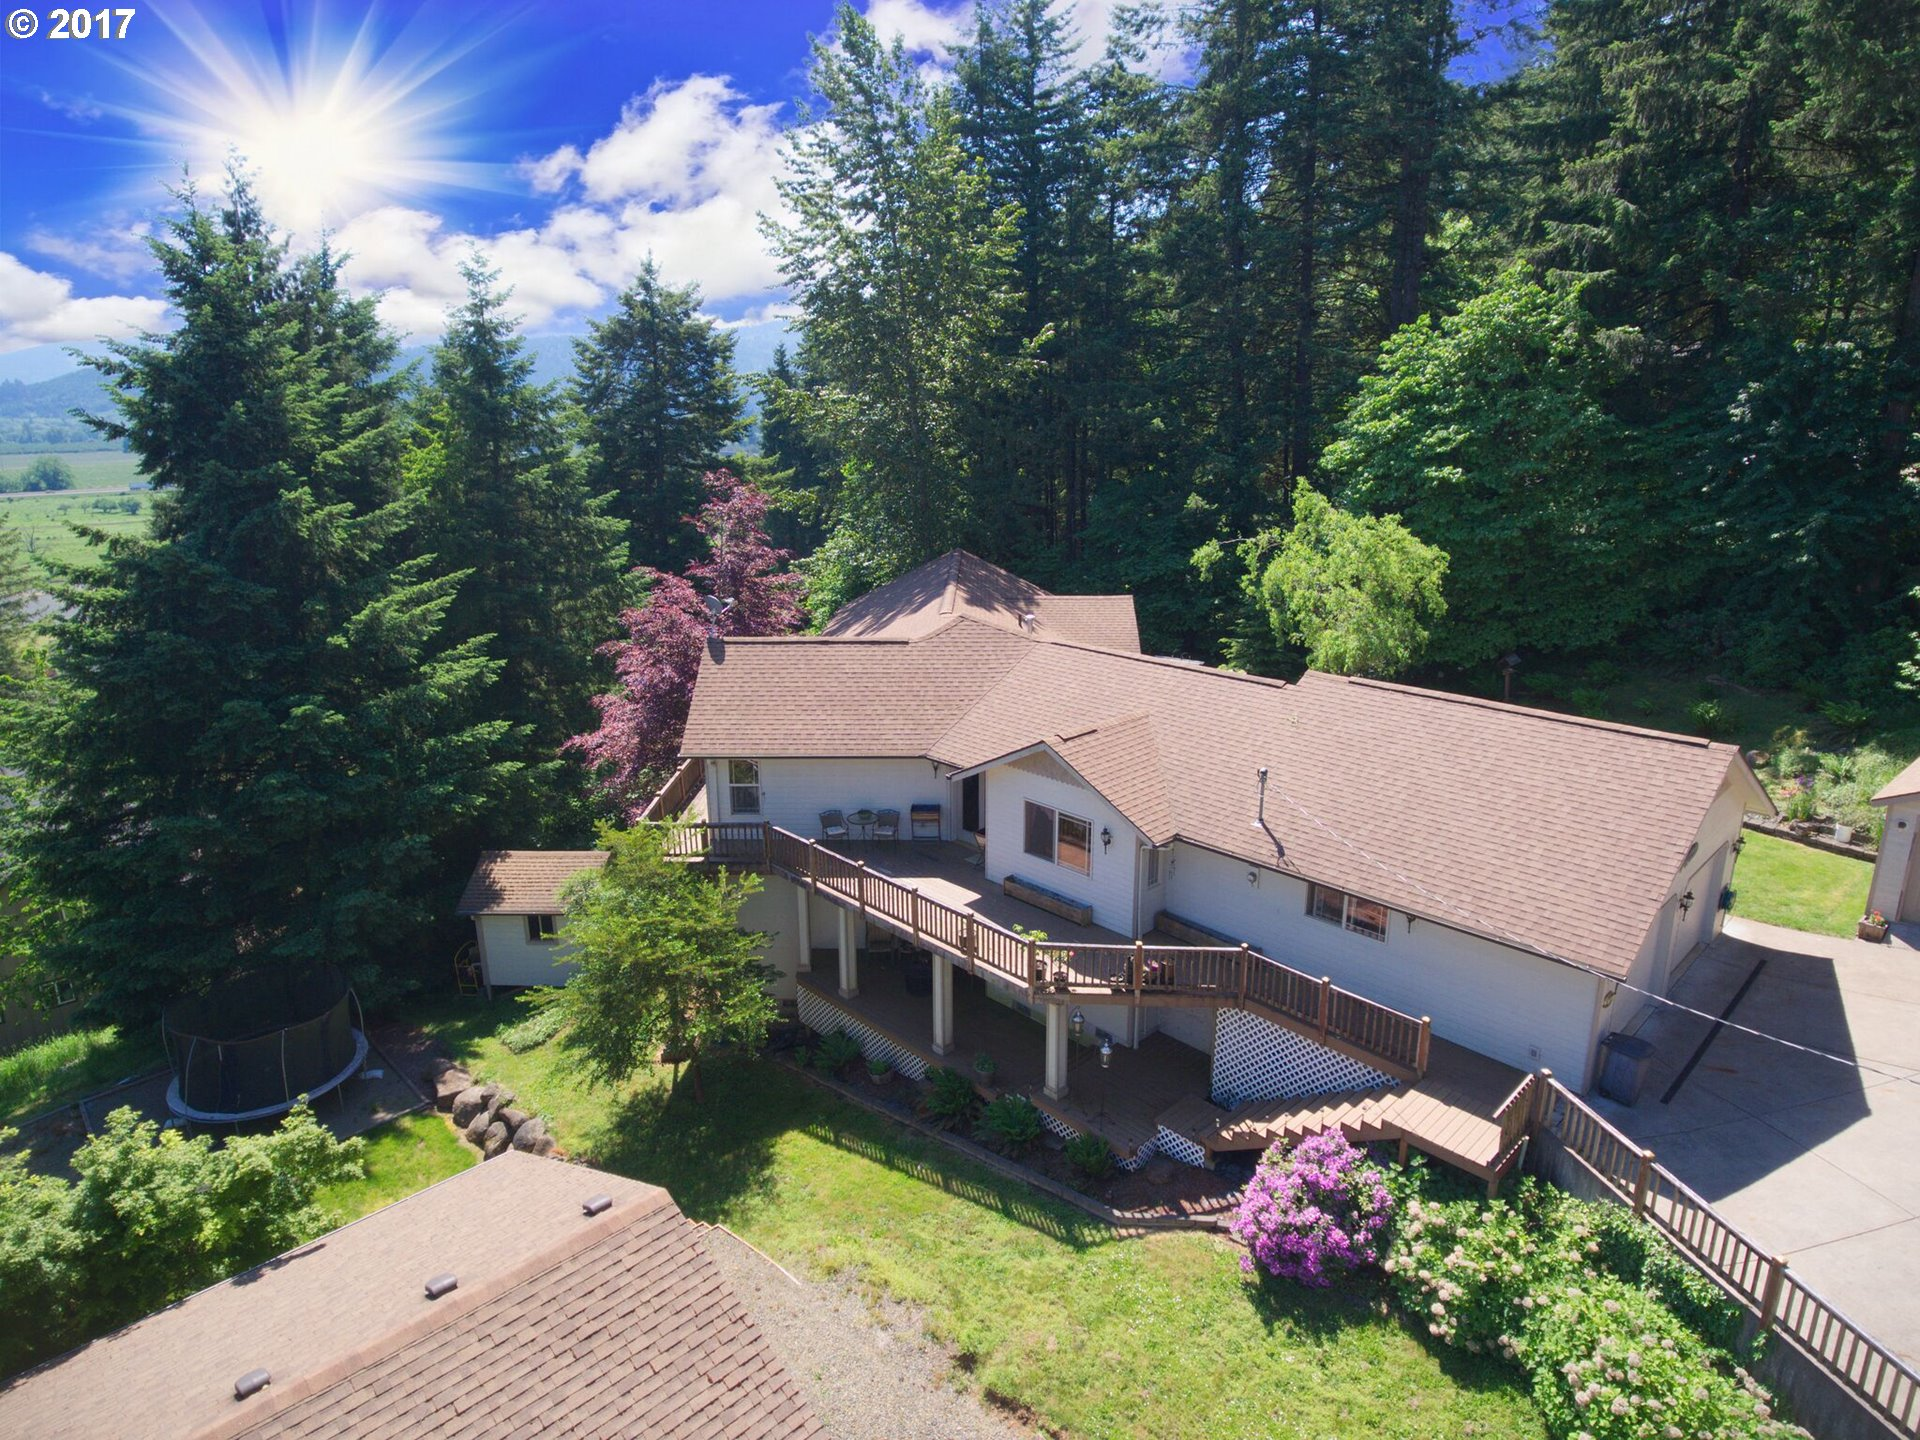 780 HOLBROOK LN, Creswell, OR 97426